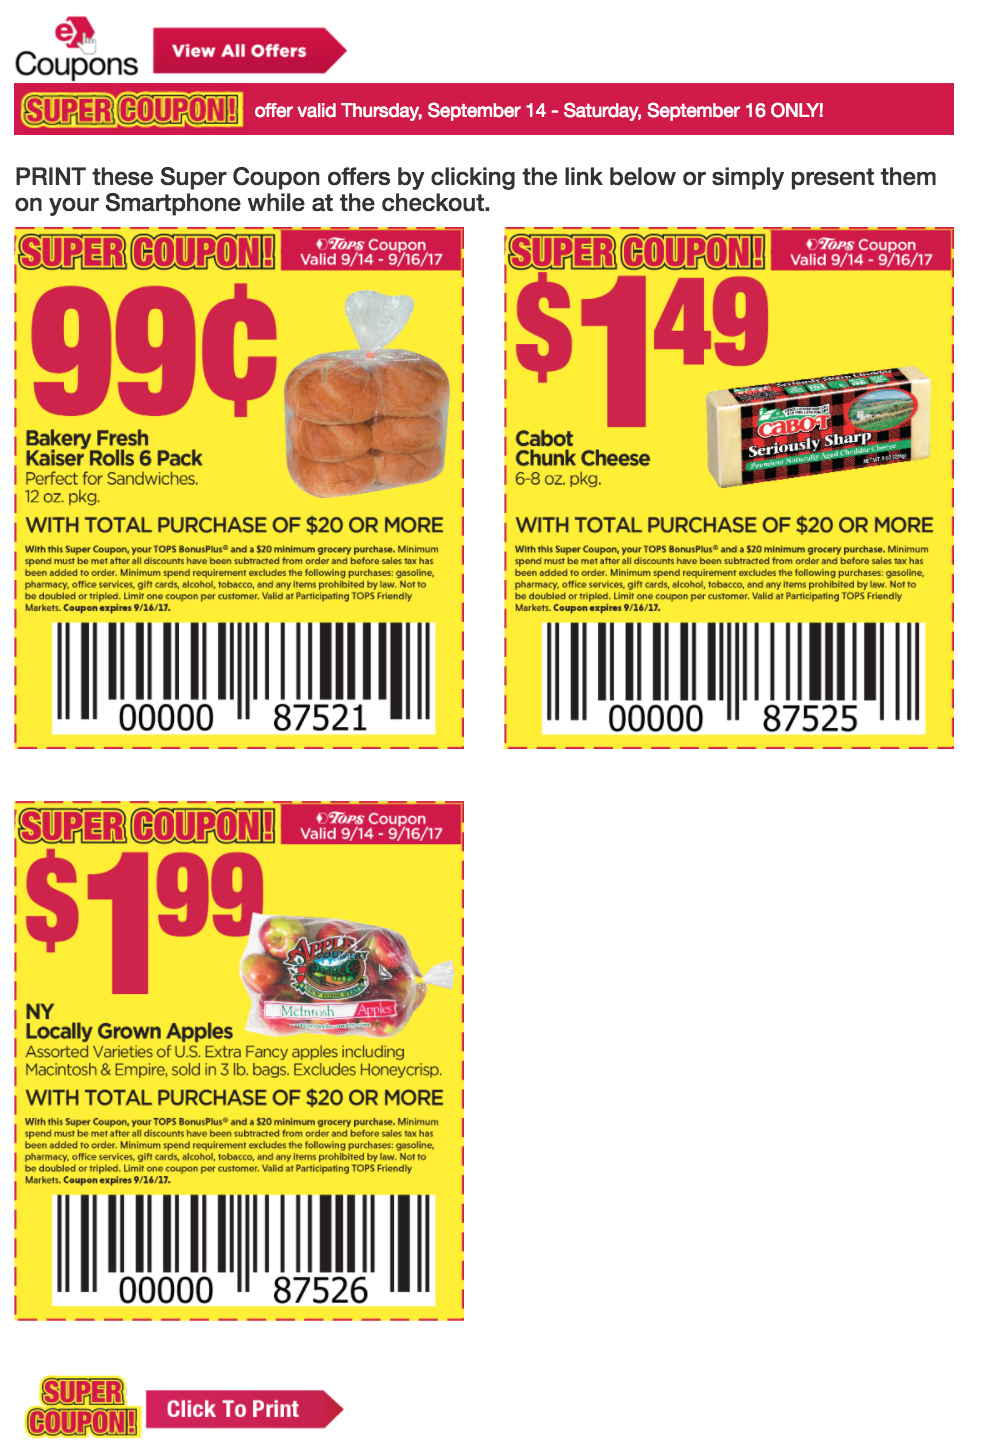 Find the current Tops Markets Ad Scan & Coupon Matchups here. Find the printable shopping list with my favorite coupon deals here. Find the sneak peek of the Tops ad with match-ups for next week here (ad scan is posted, working on matchups!!).